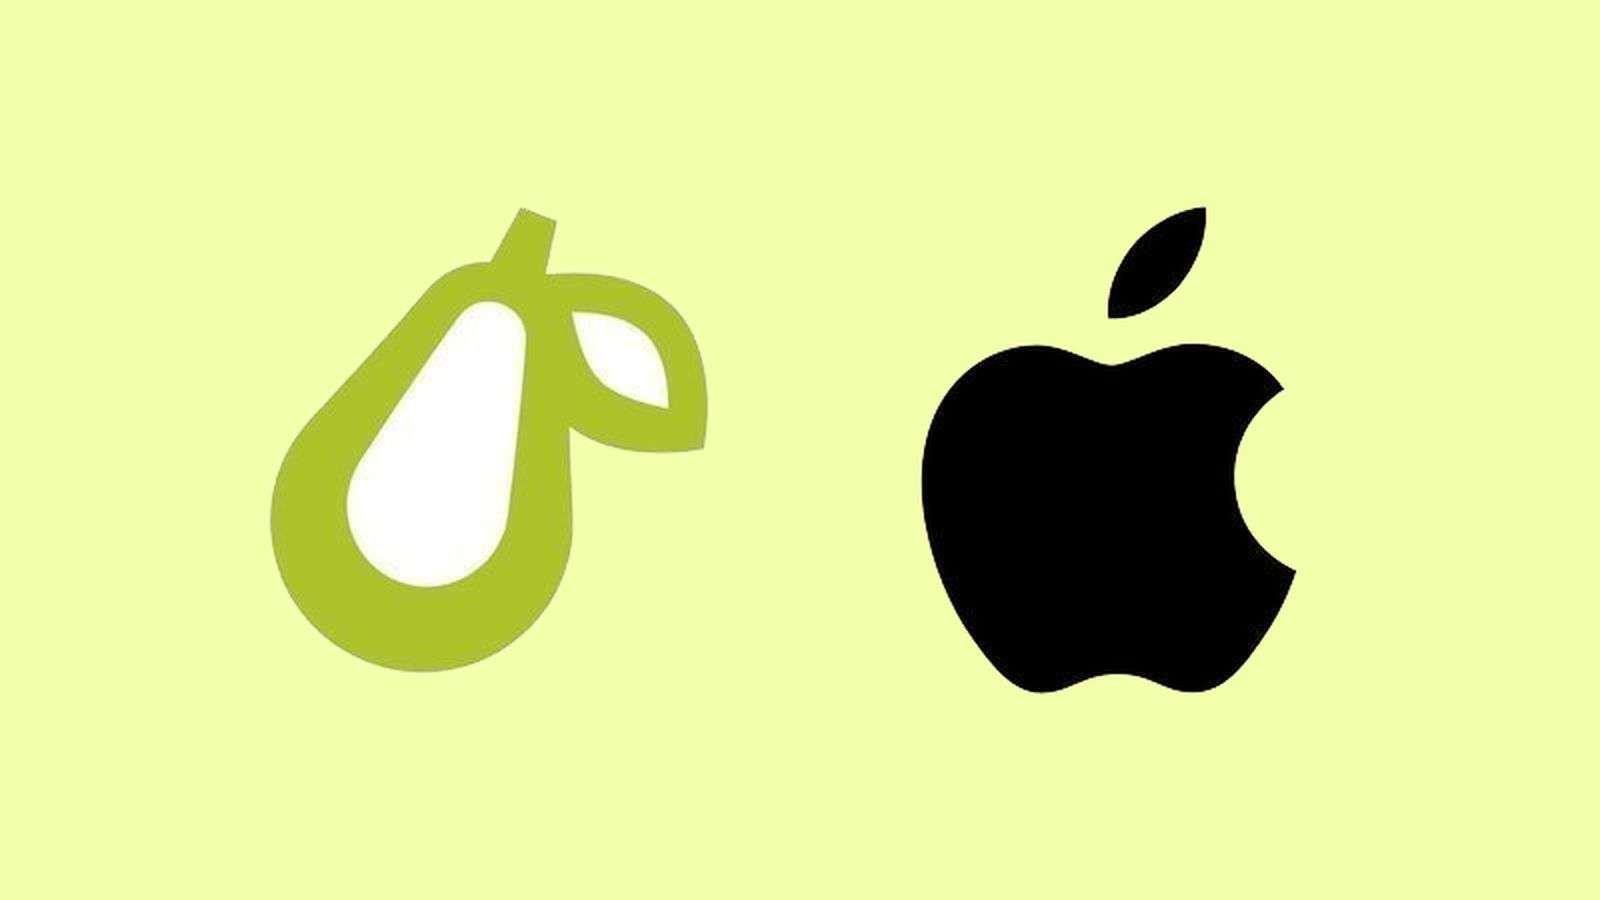 Prepear Changes Pear Logo to Settle Trademark Dispute With Apple